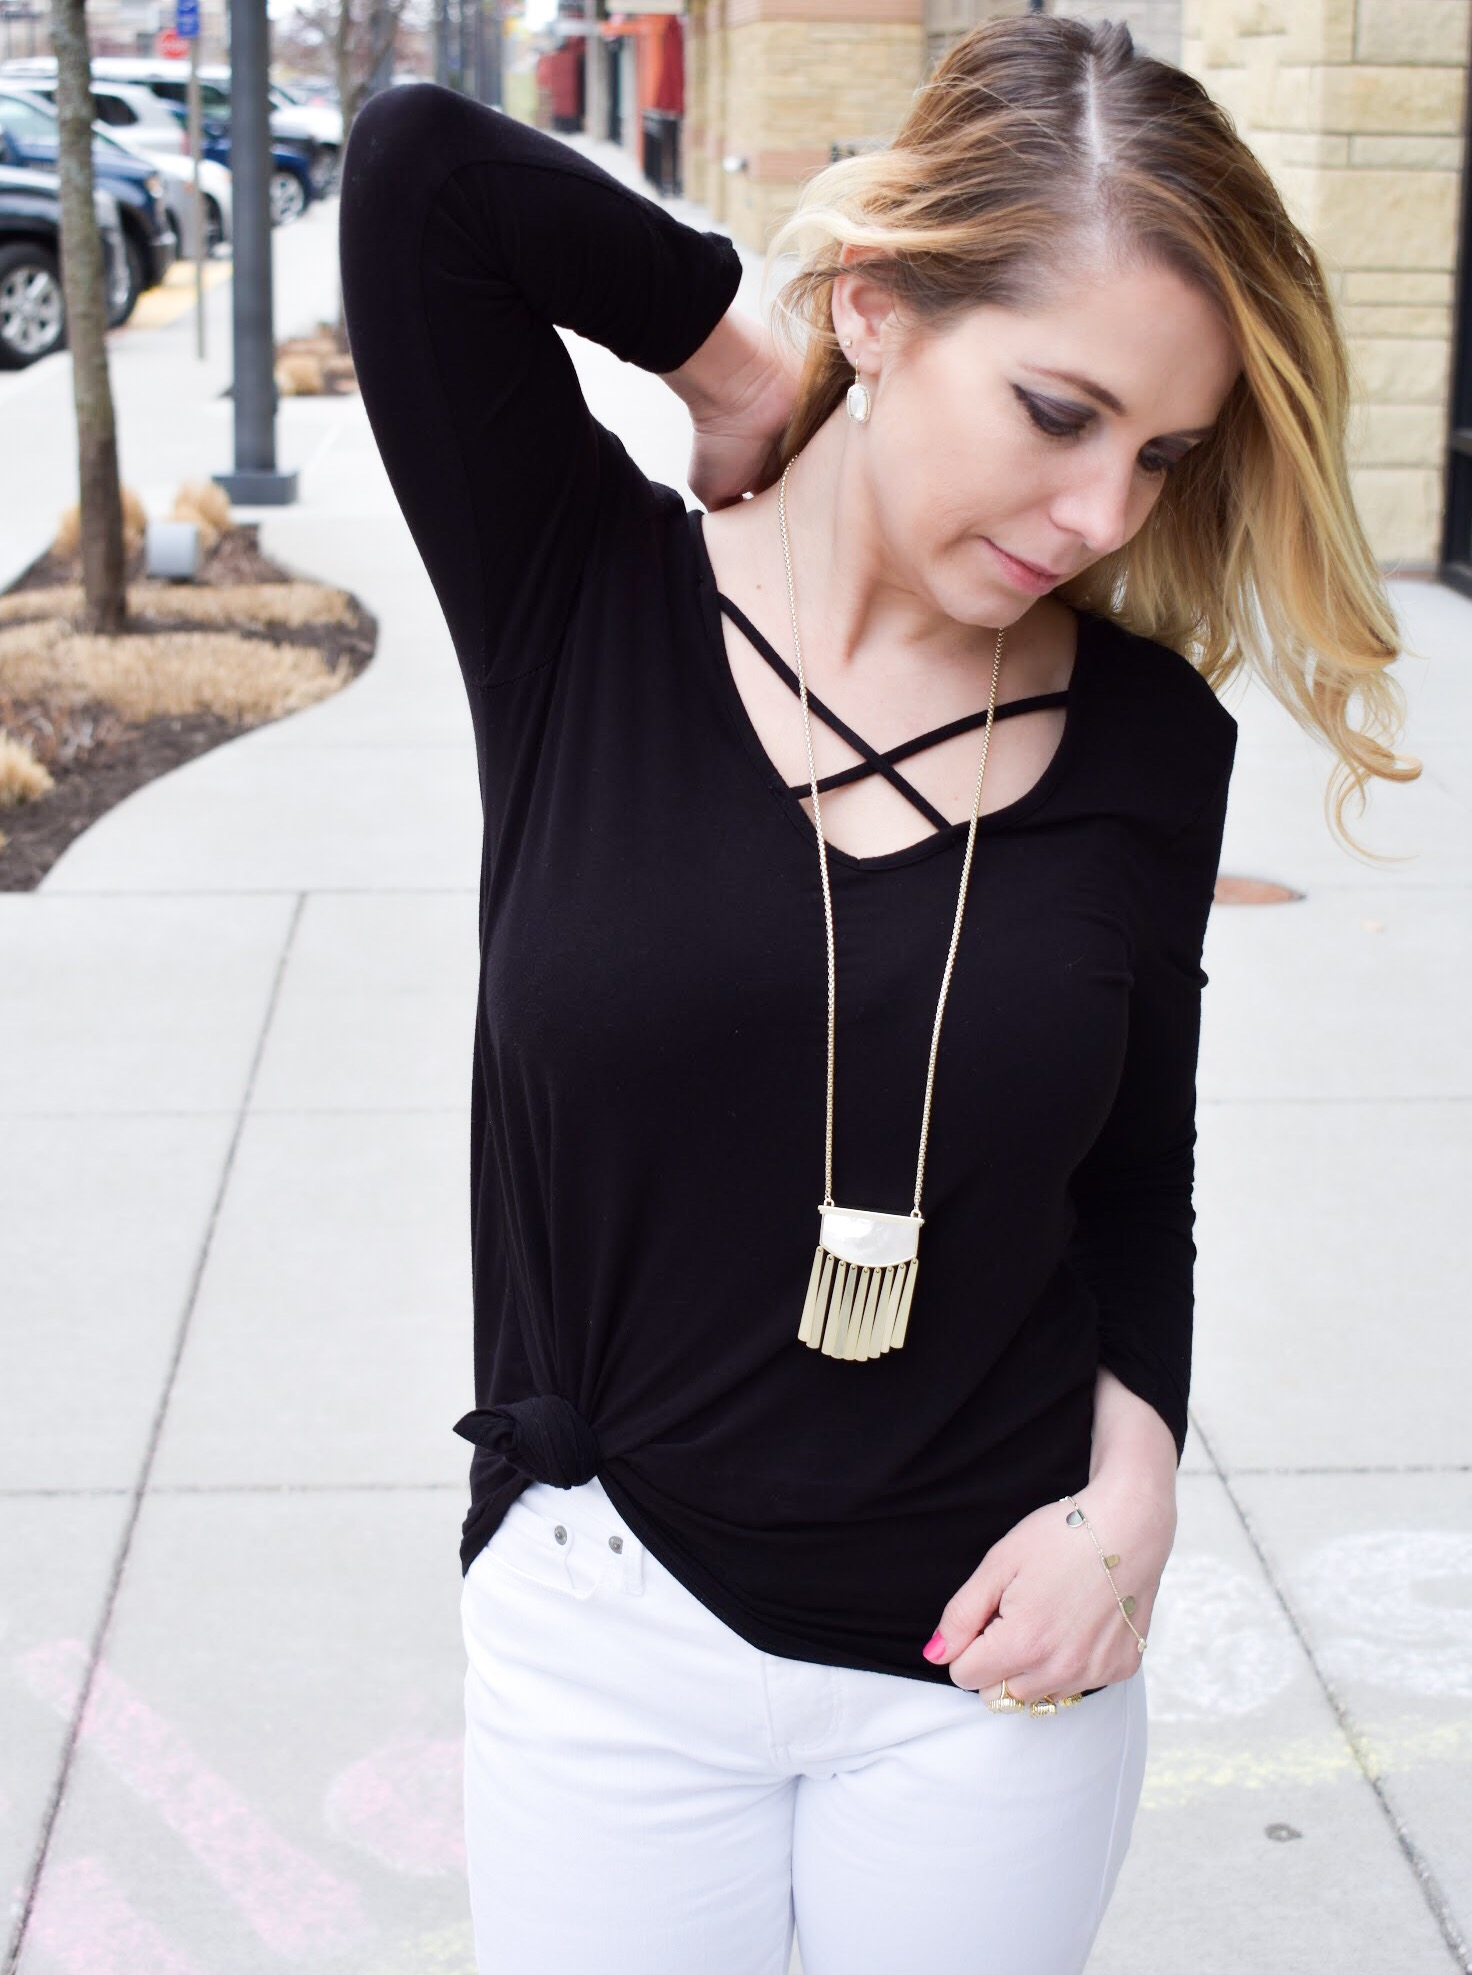 Monochrome Kendra Scott Jewelry Look: Kansas City fashion blogger COVET by tricia showcases a black and white spring transitional spring style featuring Kendra Scott jewelry. Here's how to style a knotted blouse with white pants, peep-toe heels, and gorgeous jewelry from Kendra Scott. The jewelry used in this post is available from Threshing Bee in Overland Park, KS.